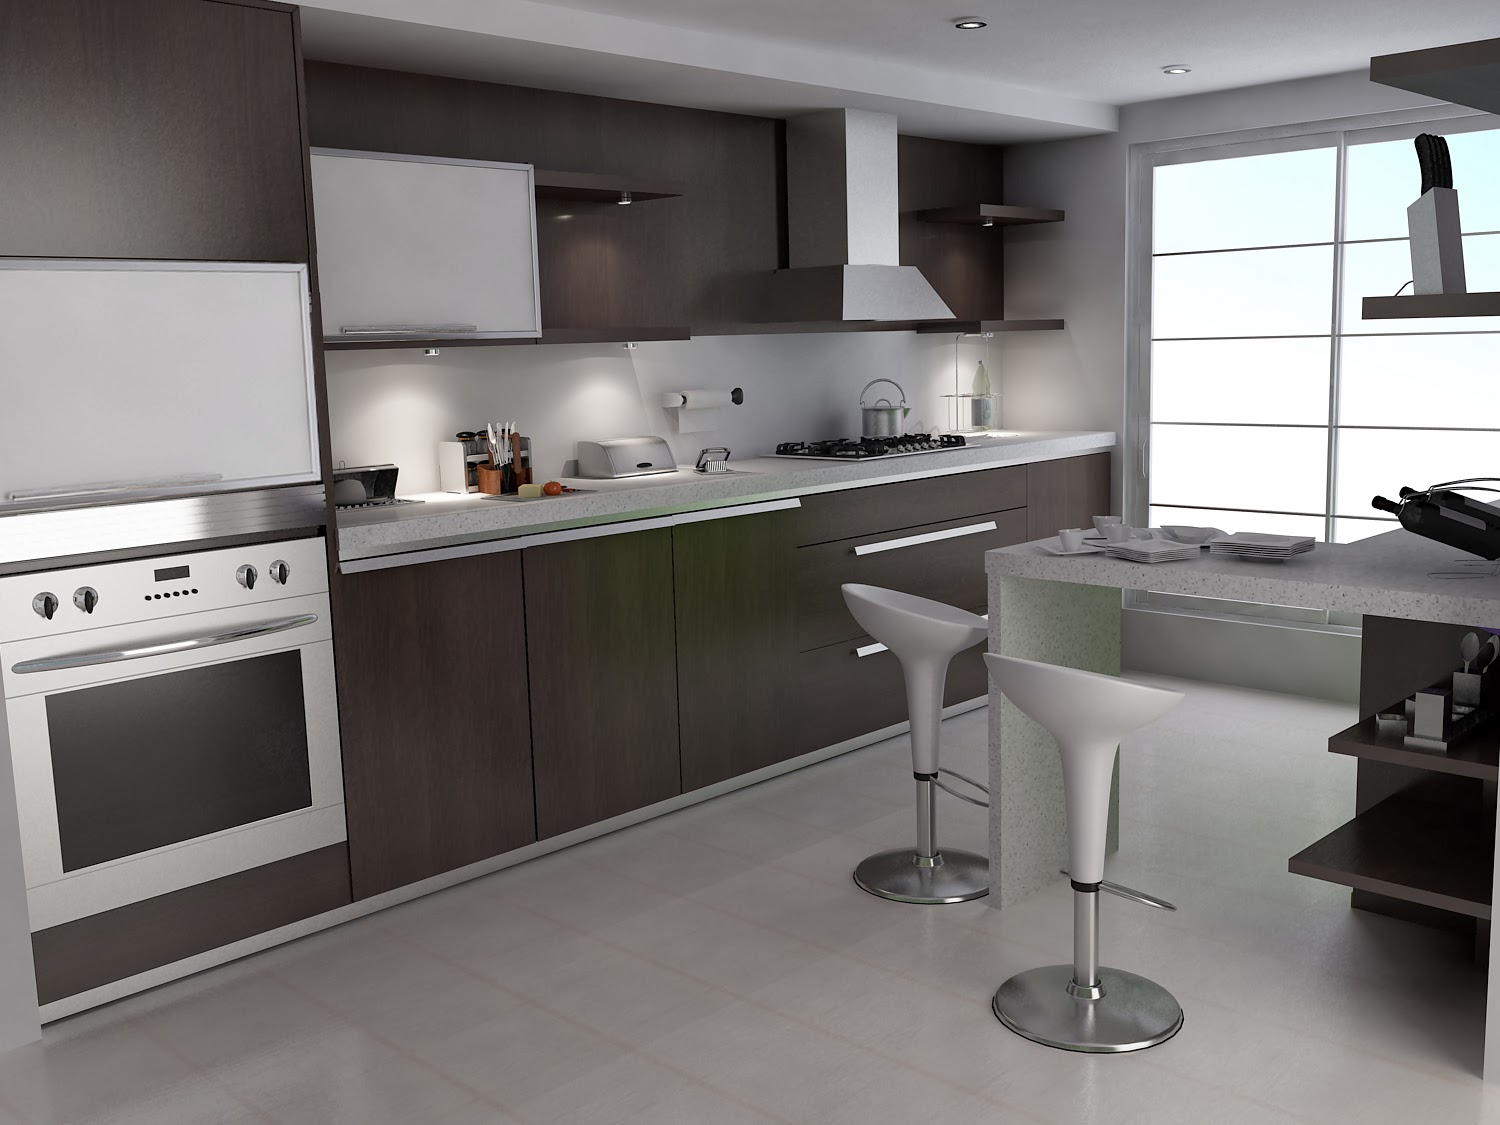 Small kitchen interior design model home interiors for Interior designs of small kitchens